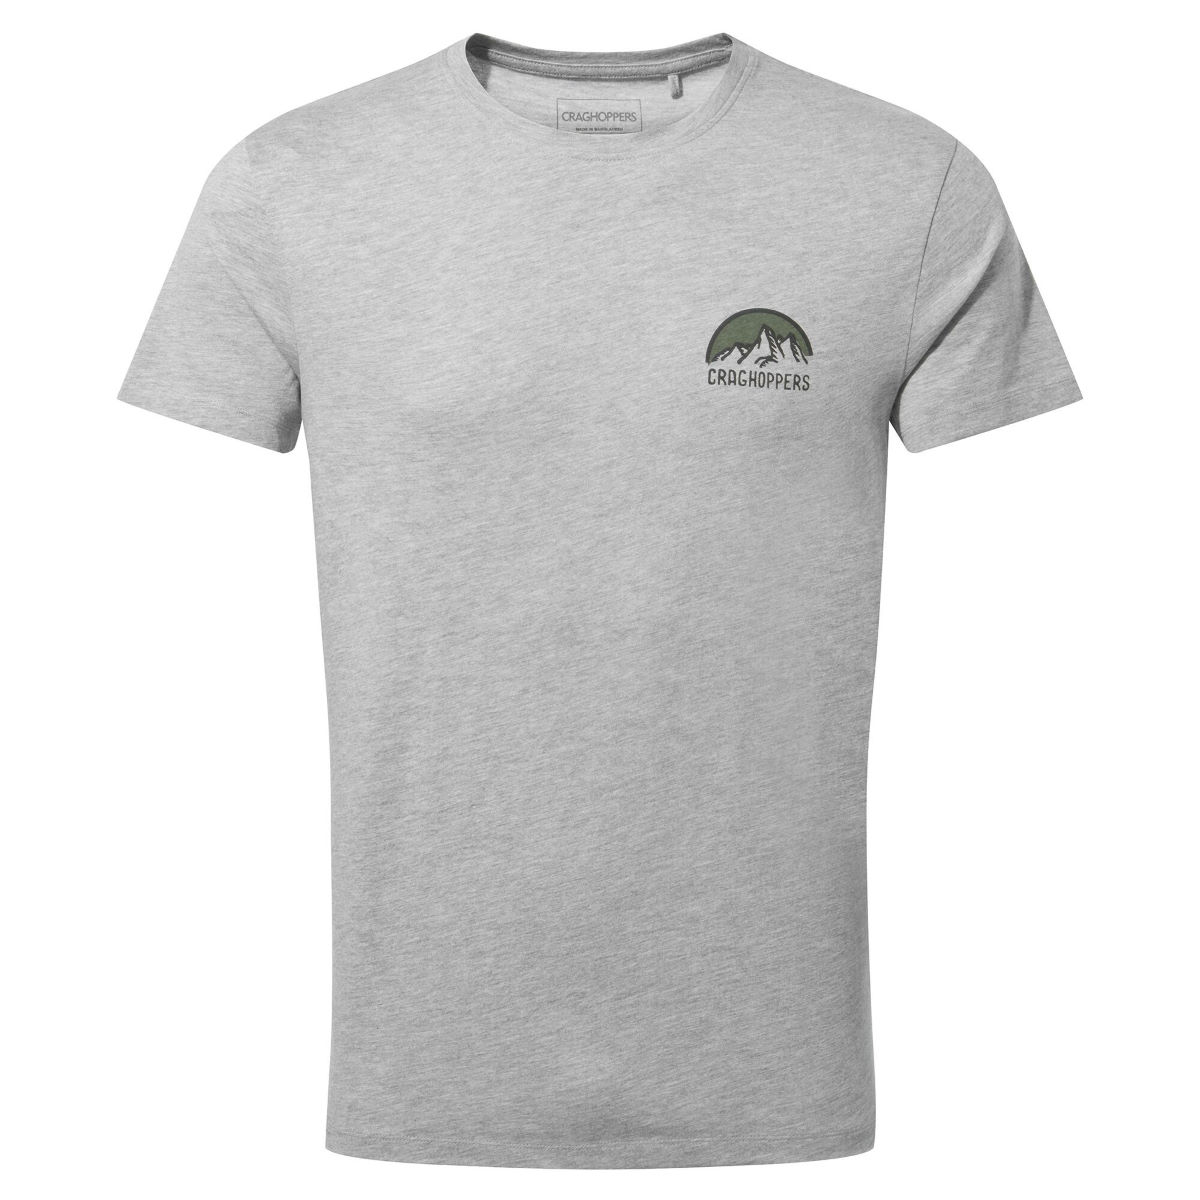 Craghoppers Mightie Short Sleeved T-shirt - Large Soft Grey Marl